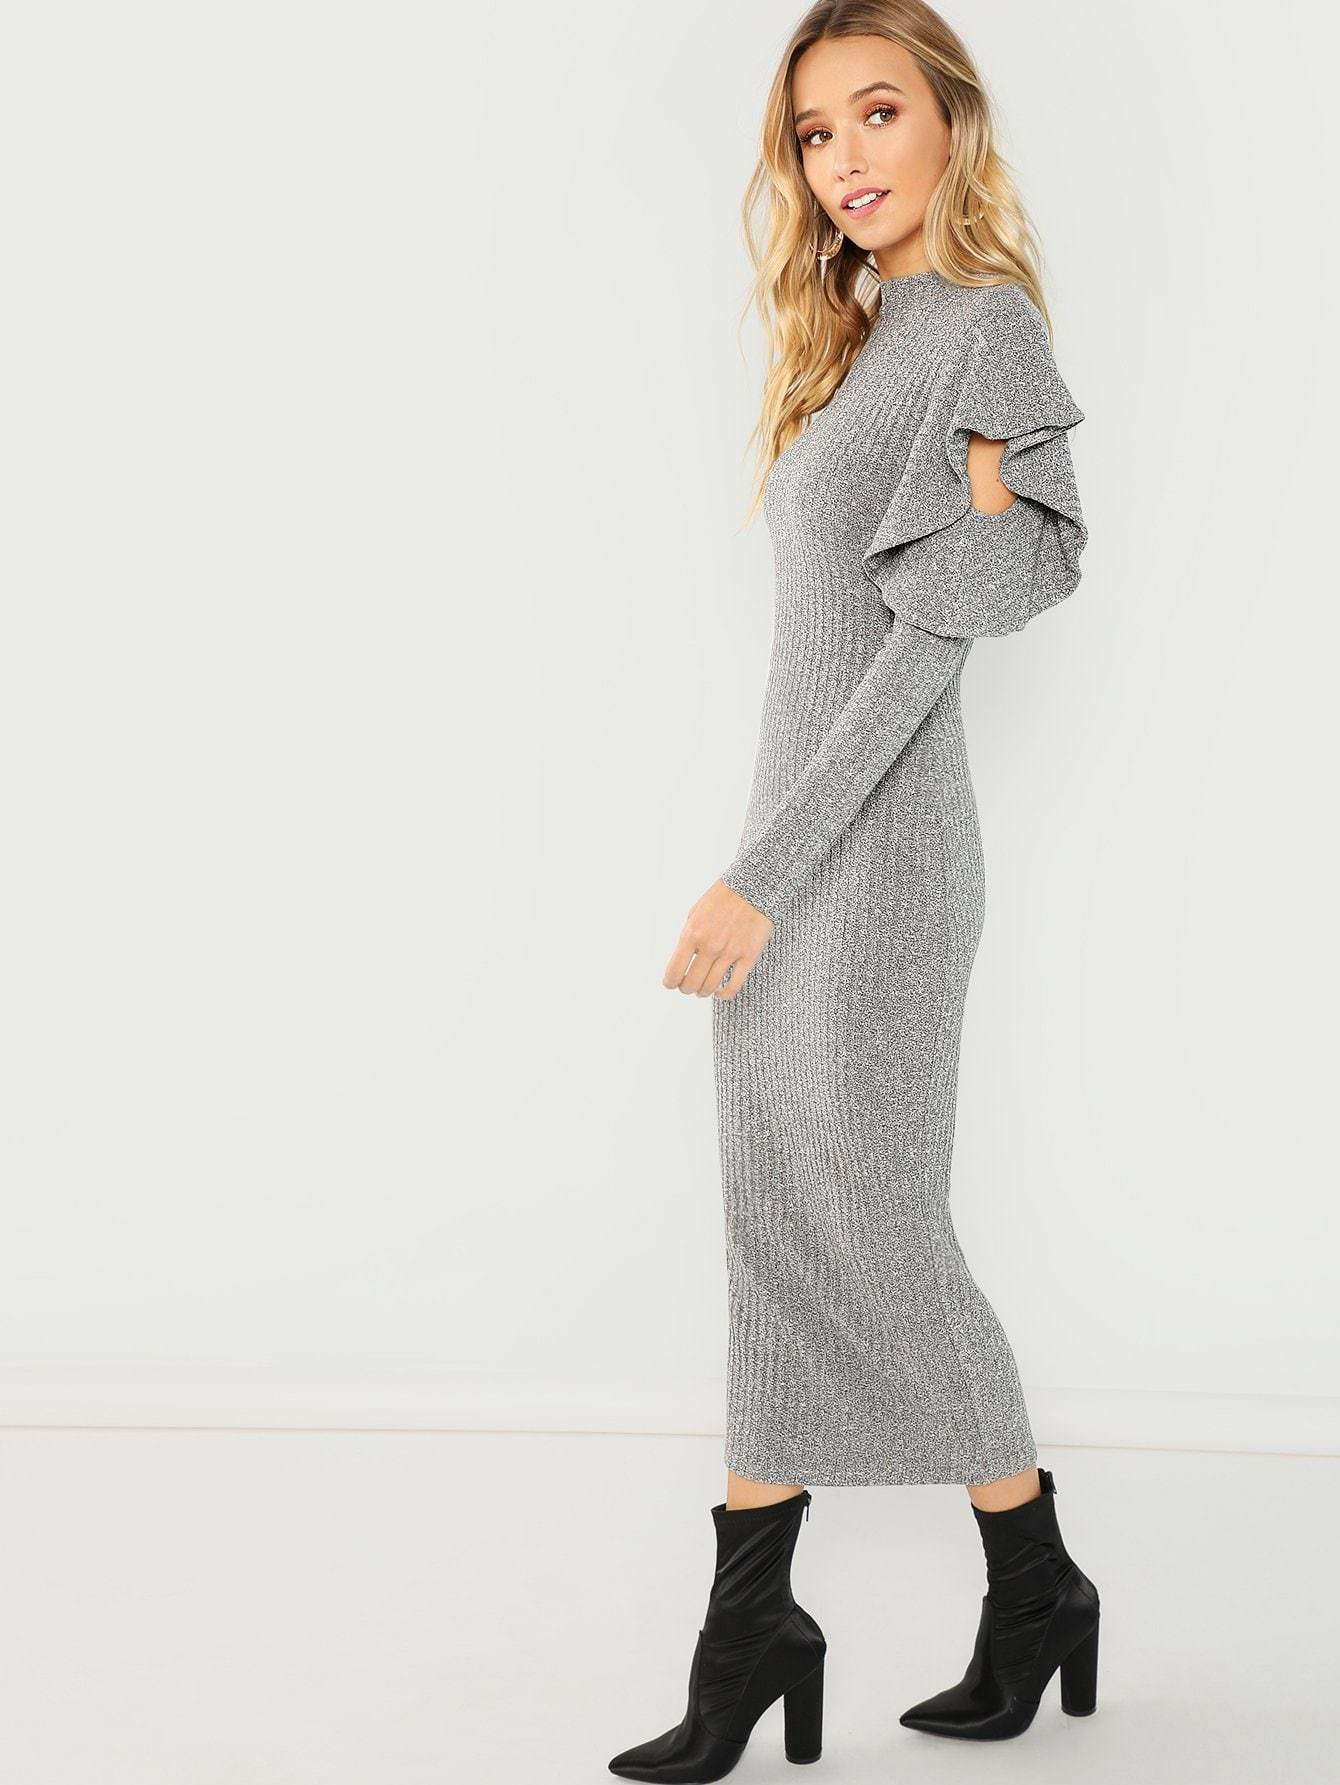 Ruffle Detail Solid Dress - LoveSylvester